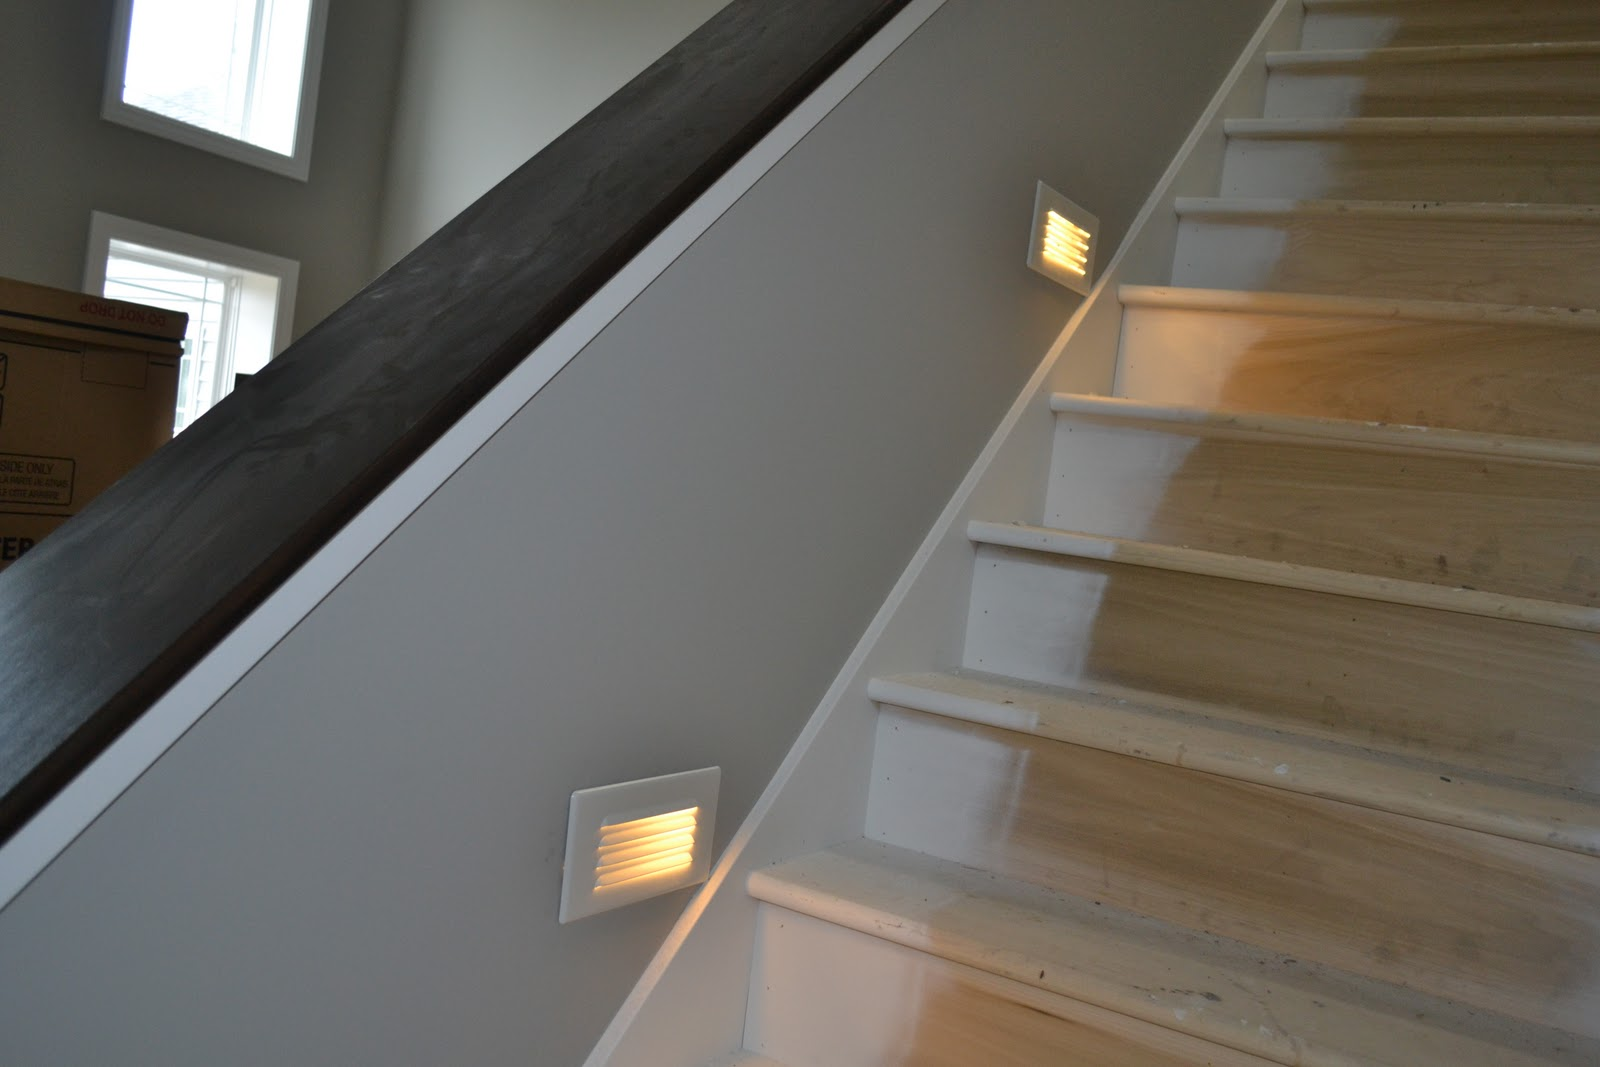 Basement Stair Ceiling Lighting: De Jong Dream House: Lighting, LVT And Loving Our Tile